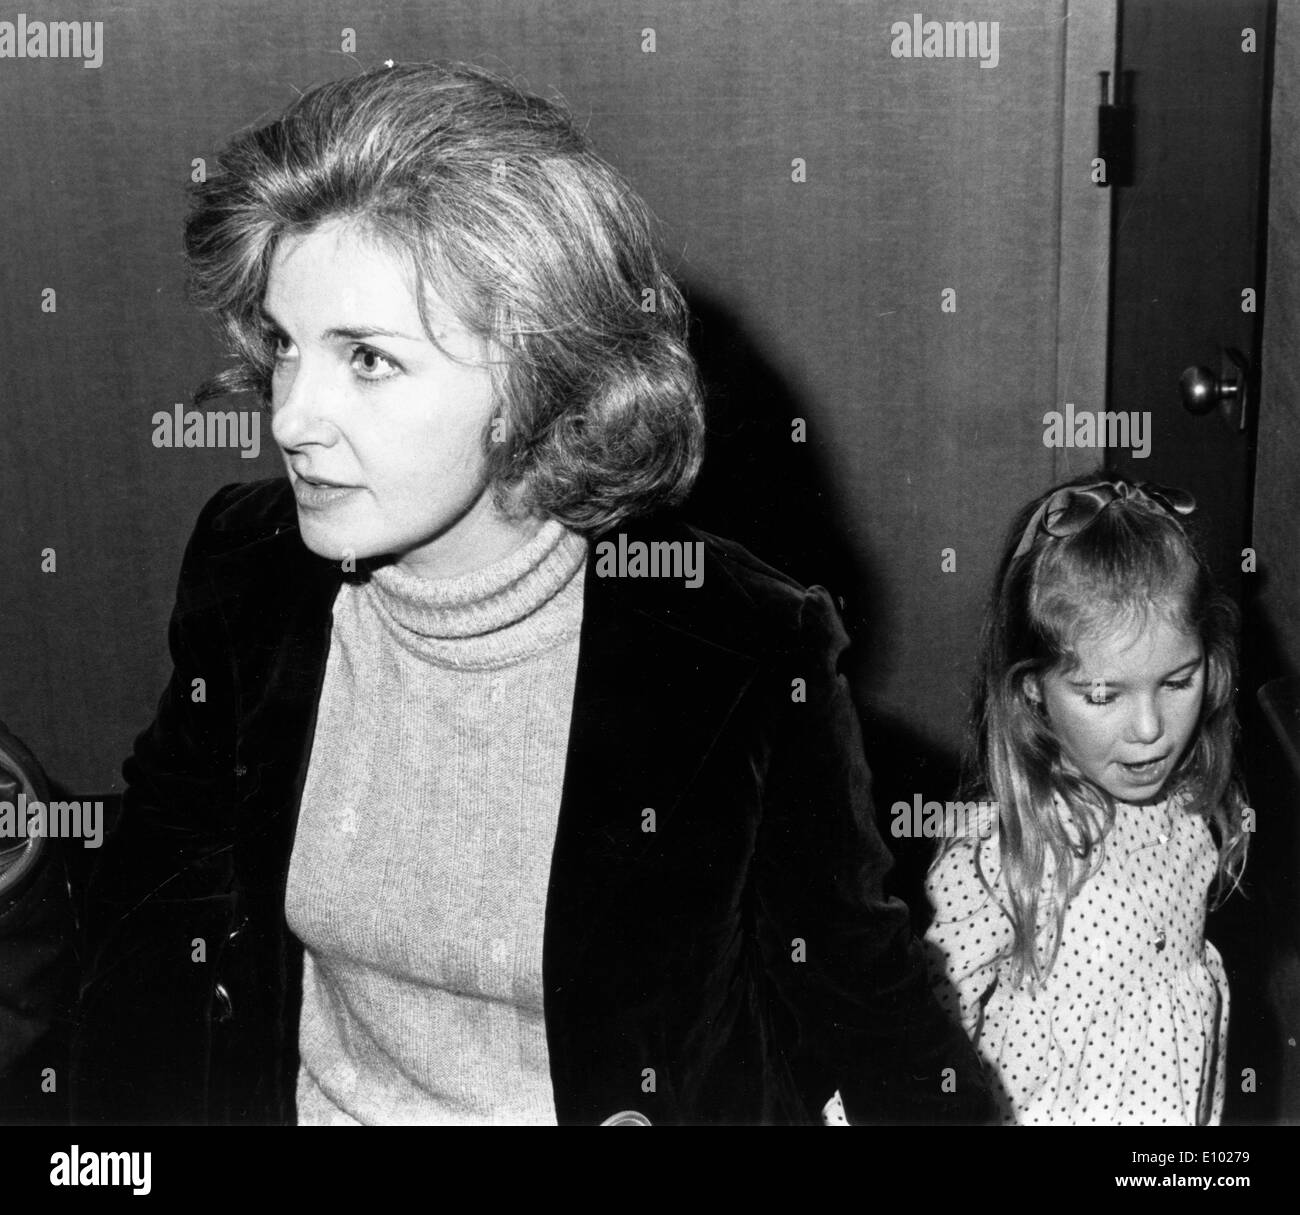 Actress Joanne Woodward at ballet premiere - Stock Image